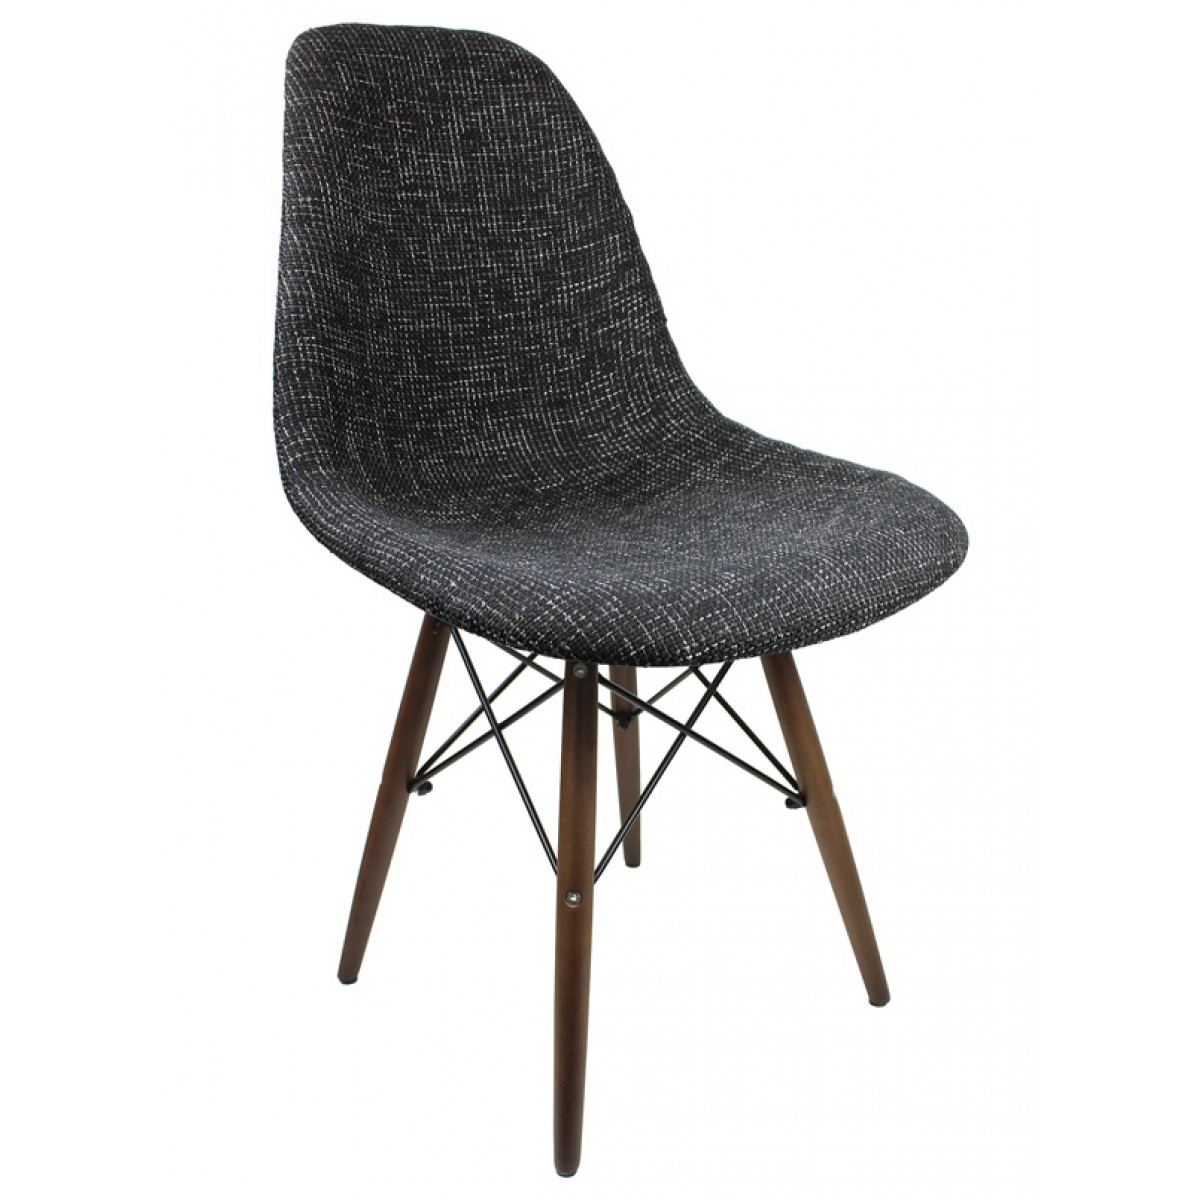 Black Fabric Upholstered Eames Style Accent Chair With